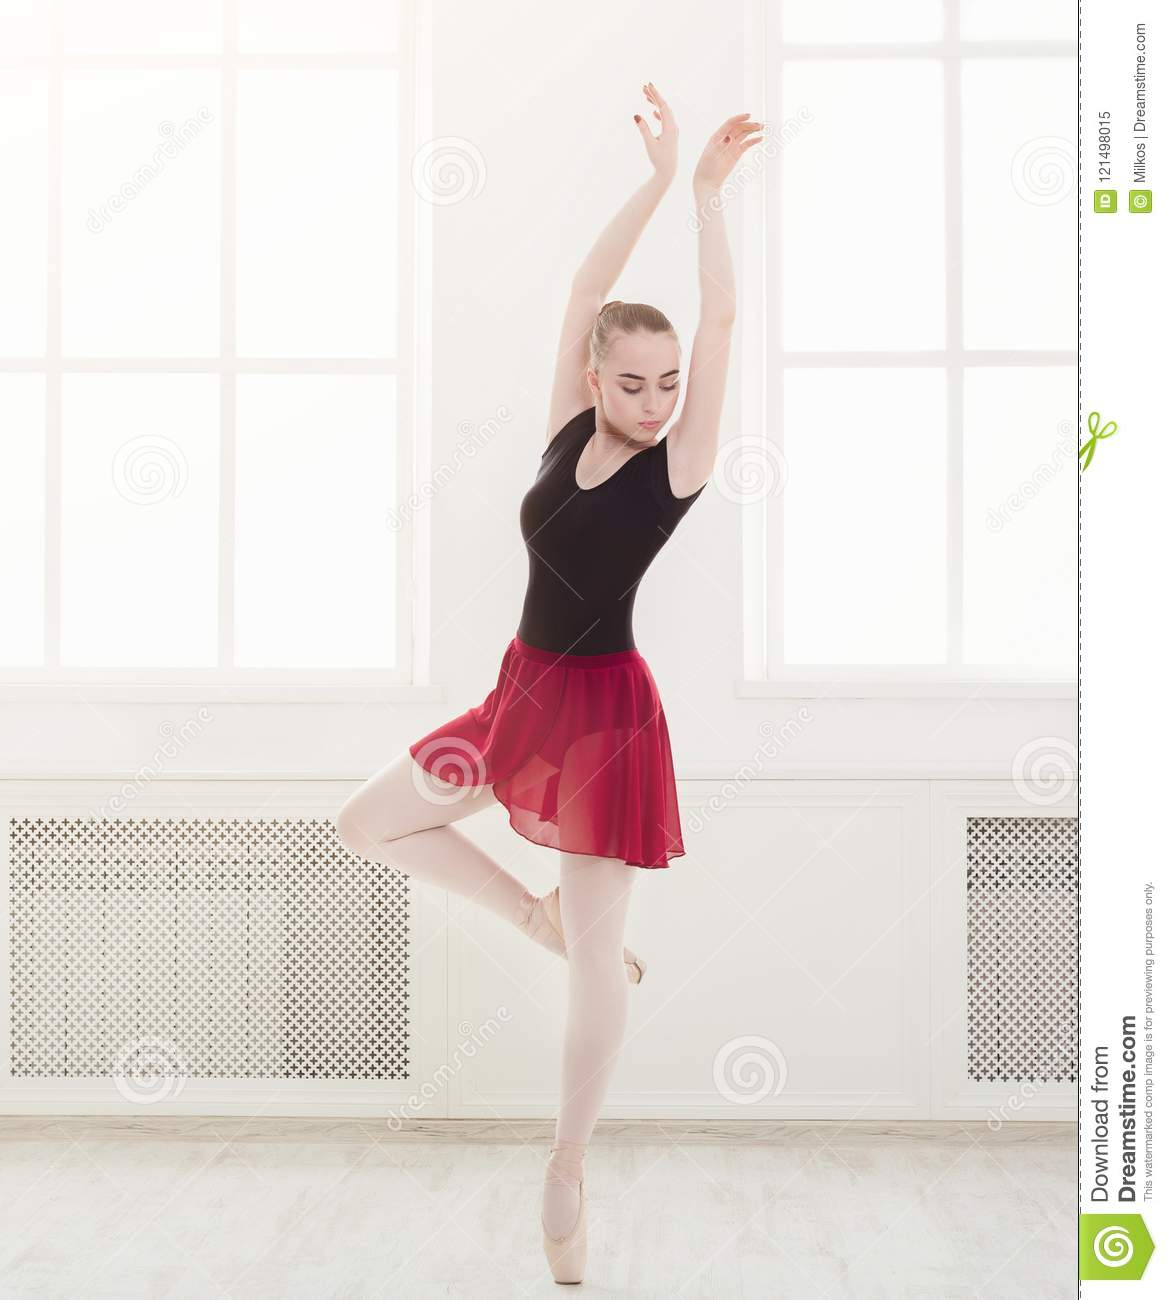 Beautiful Ballerina Dance On Pointe Stock Image Image Of Practice Fitness 121498015